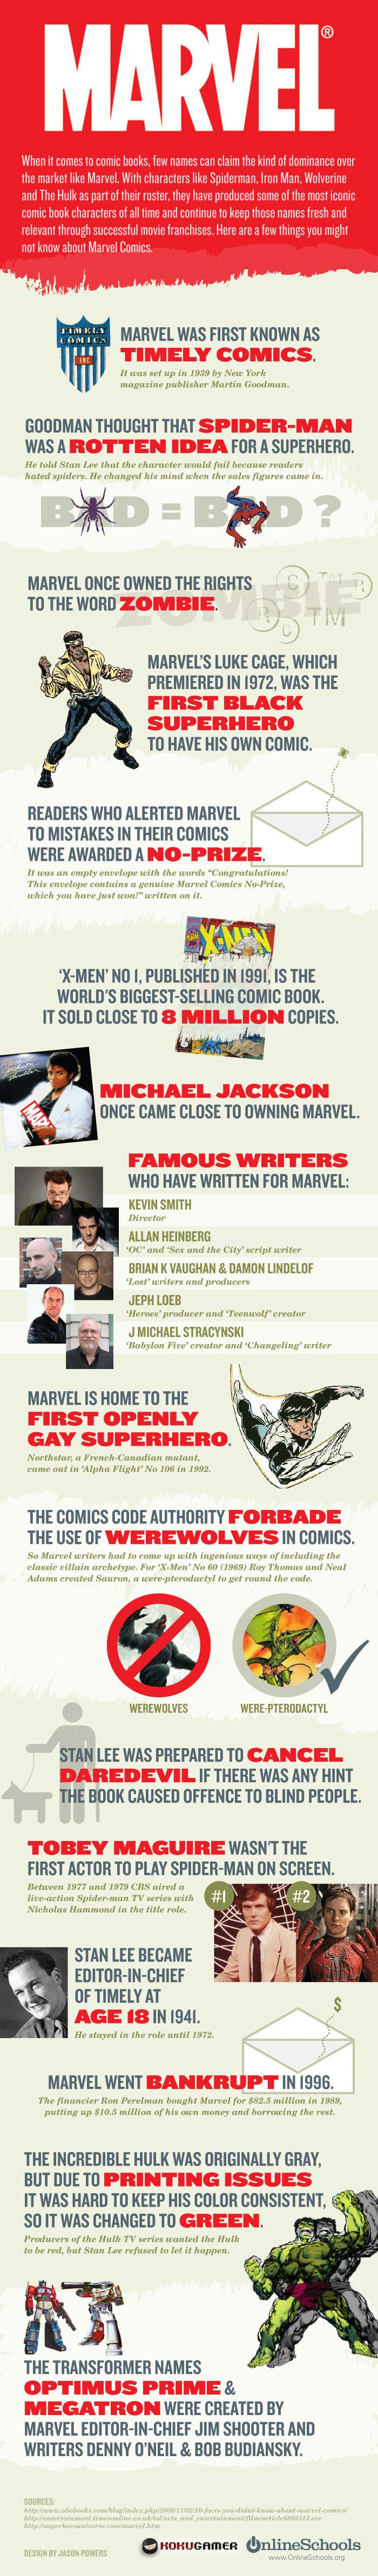 A nice fast infographic. #infographic #marvel #comics